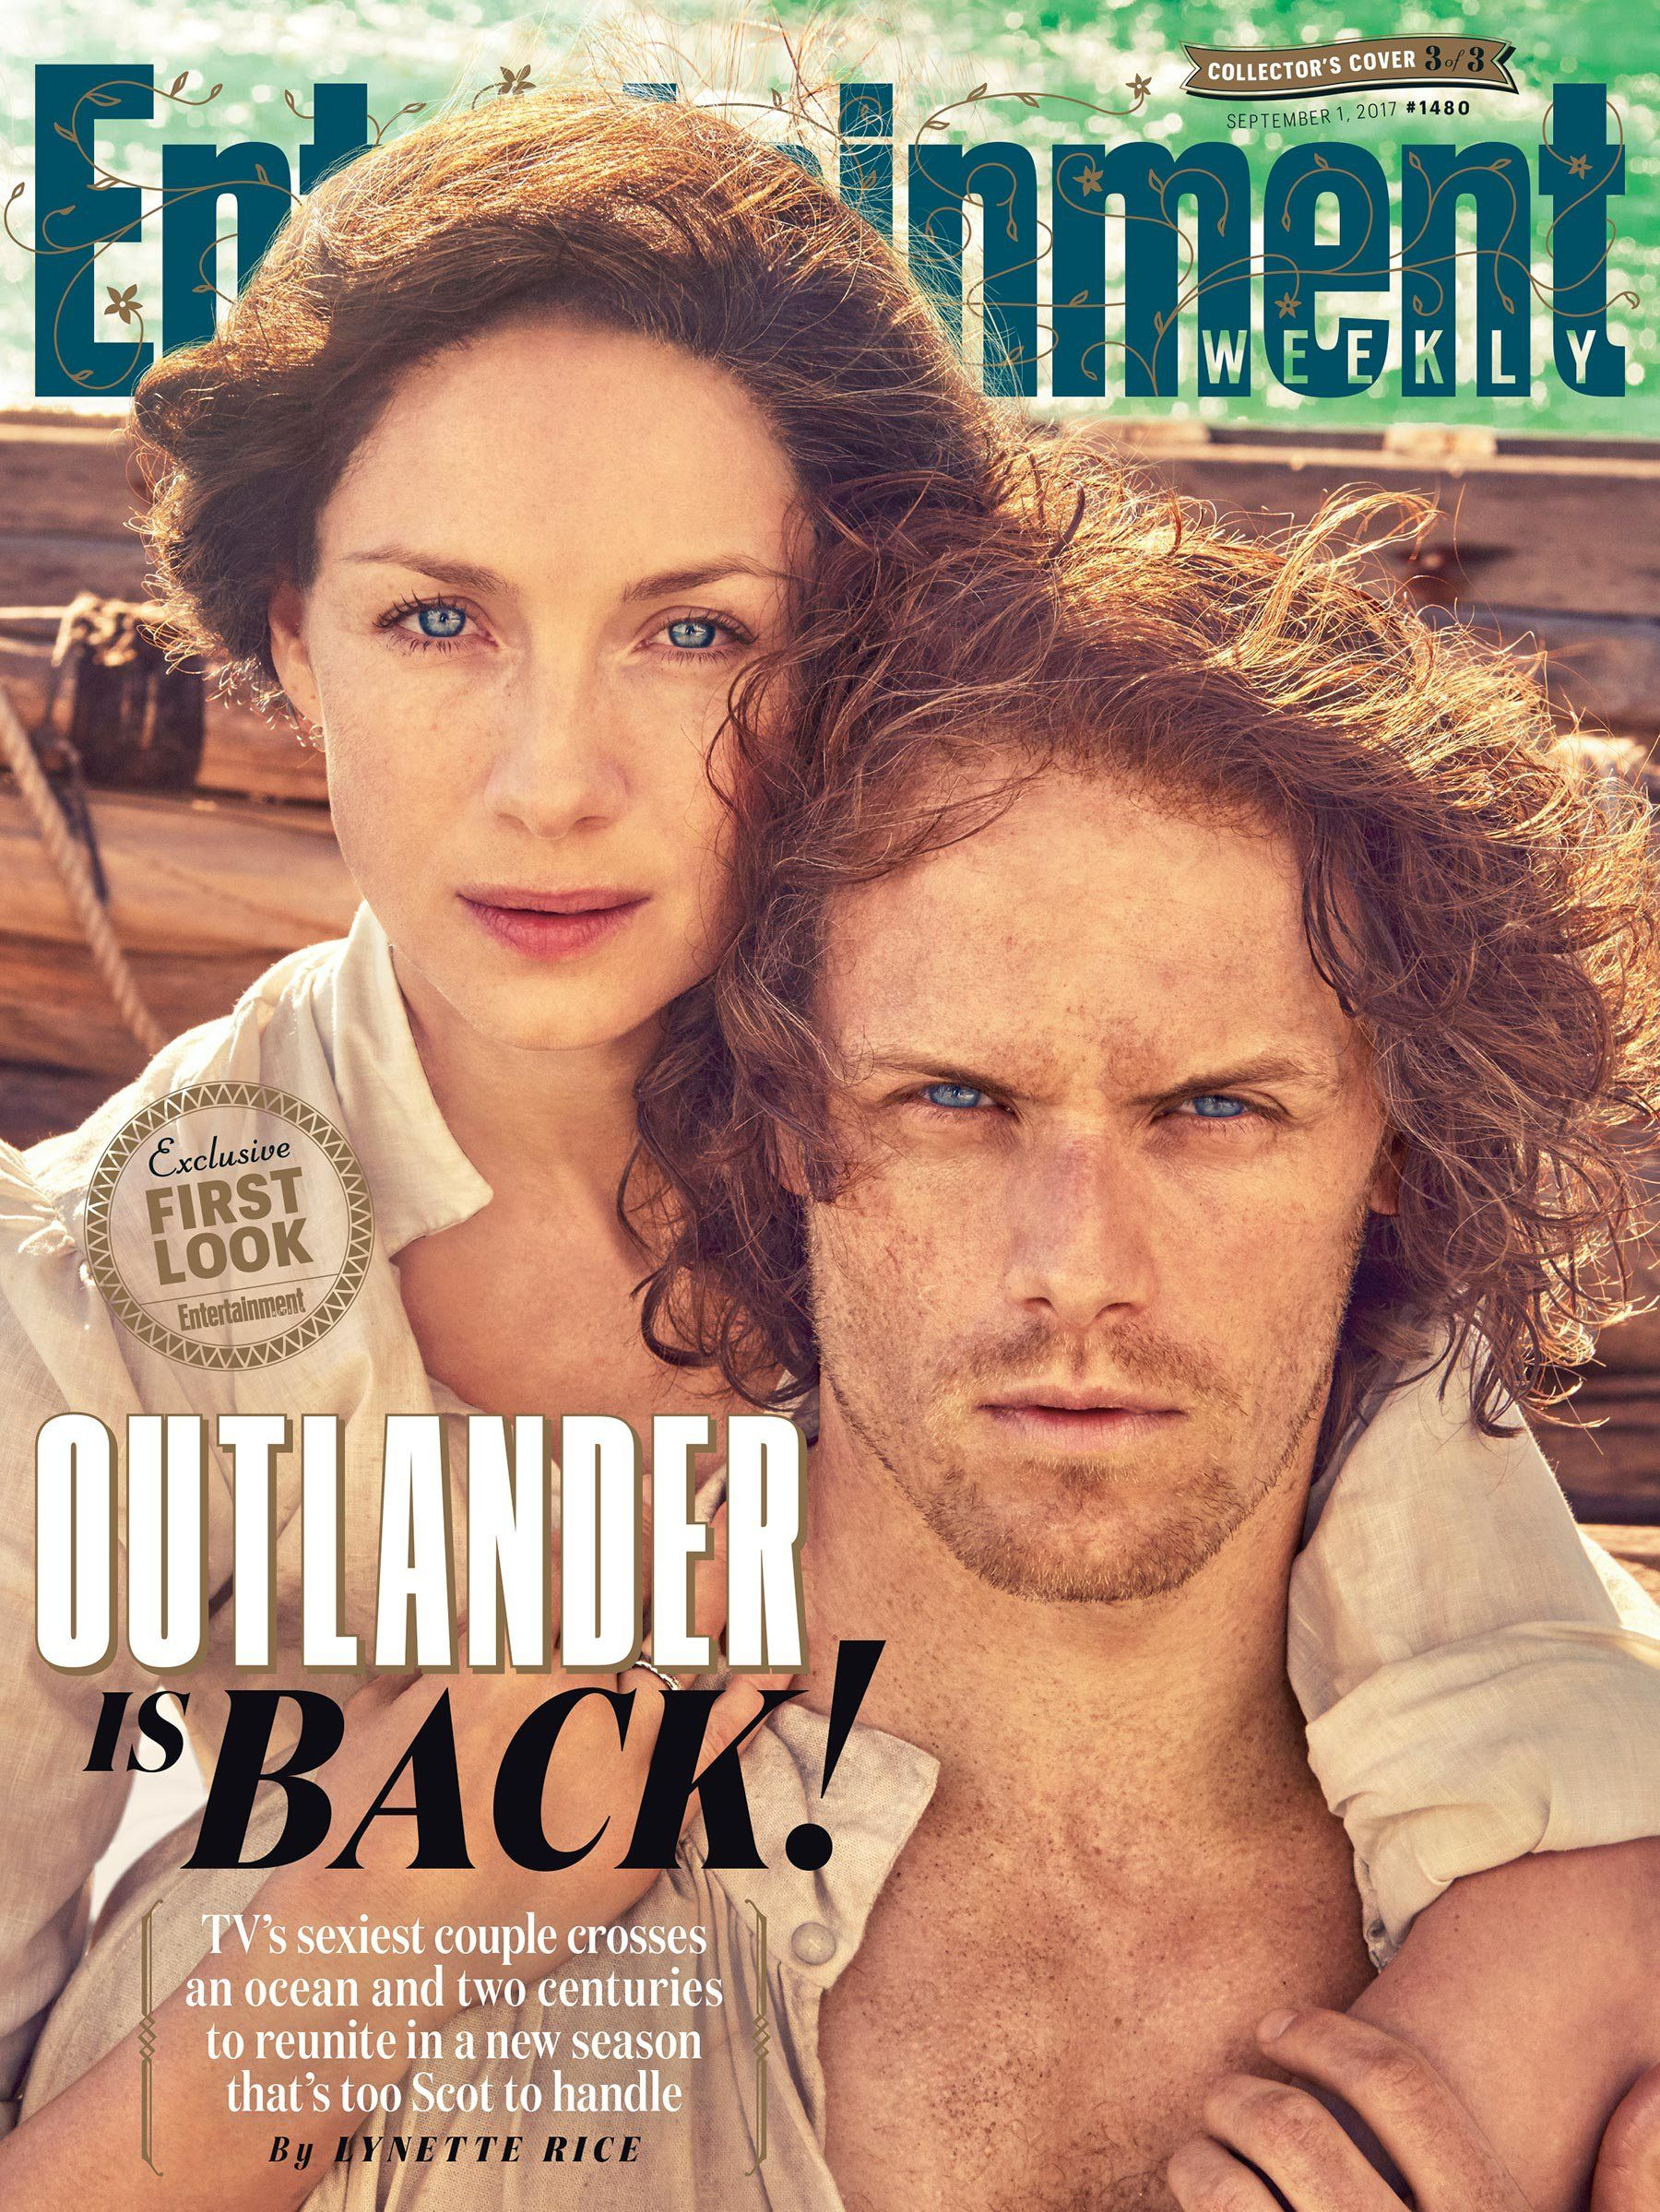 'Outlander' Is Back! TV's Sexiest Couple Reunites in the